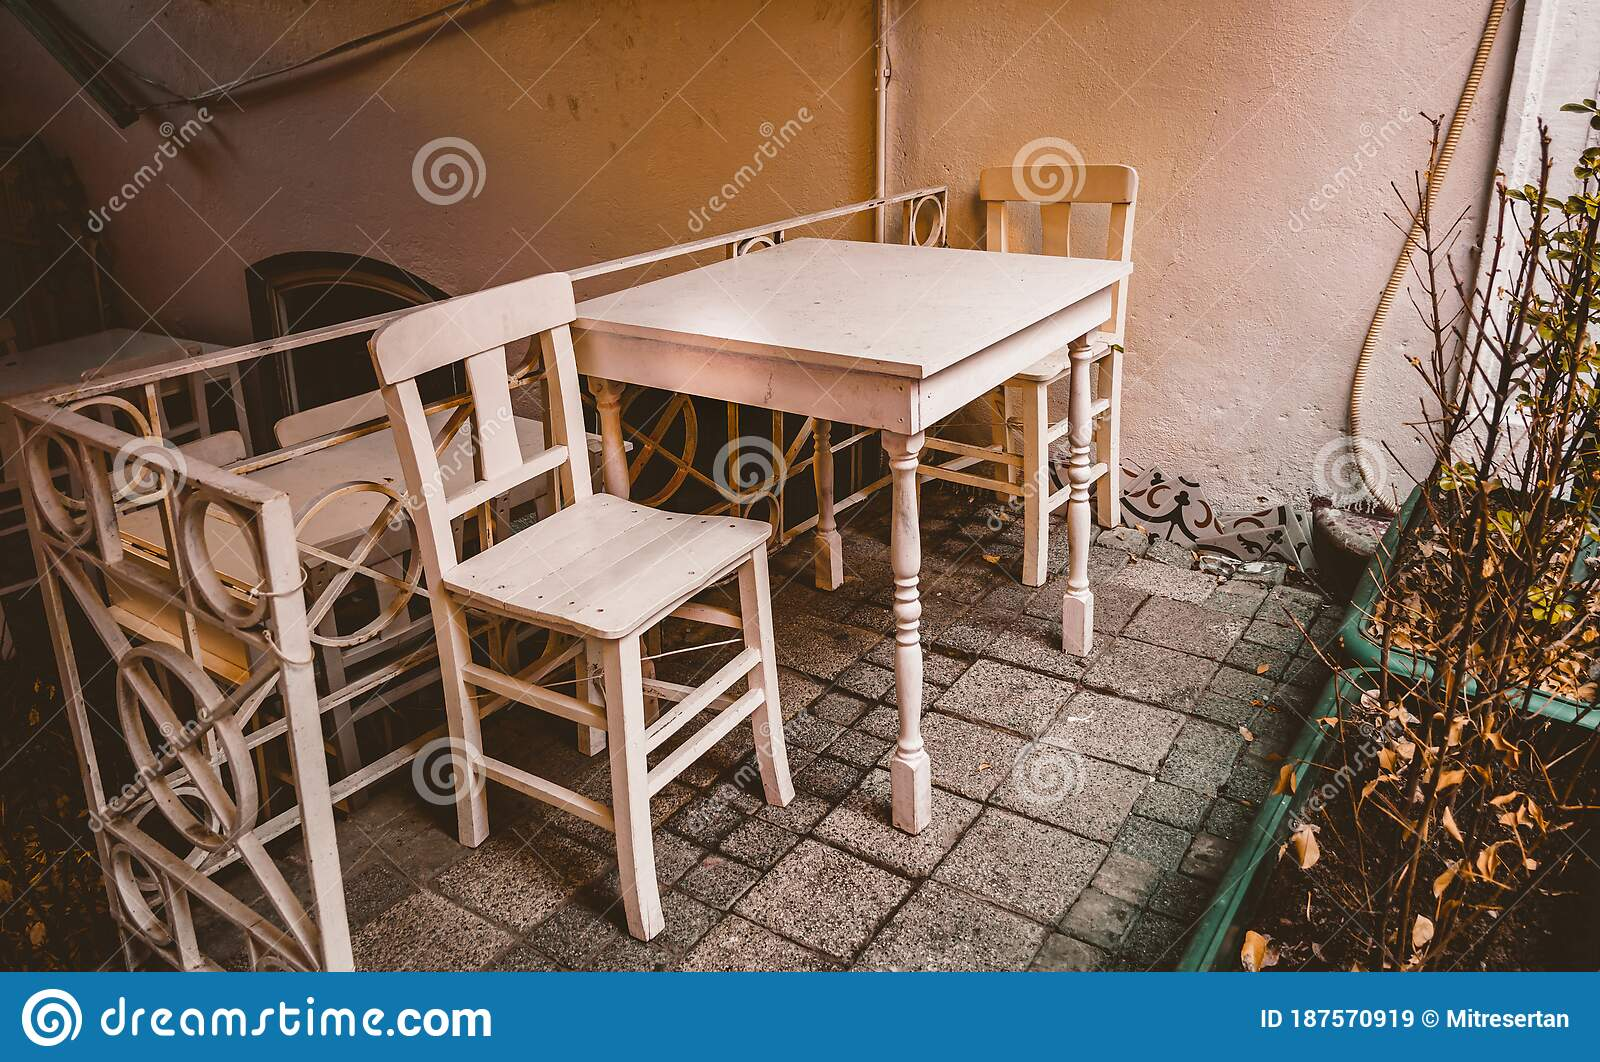 Small White Color Painted Wooden Table And Two Wooden Chairs On The Nice Garden Stock Image Image Of Table White 187570919